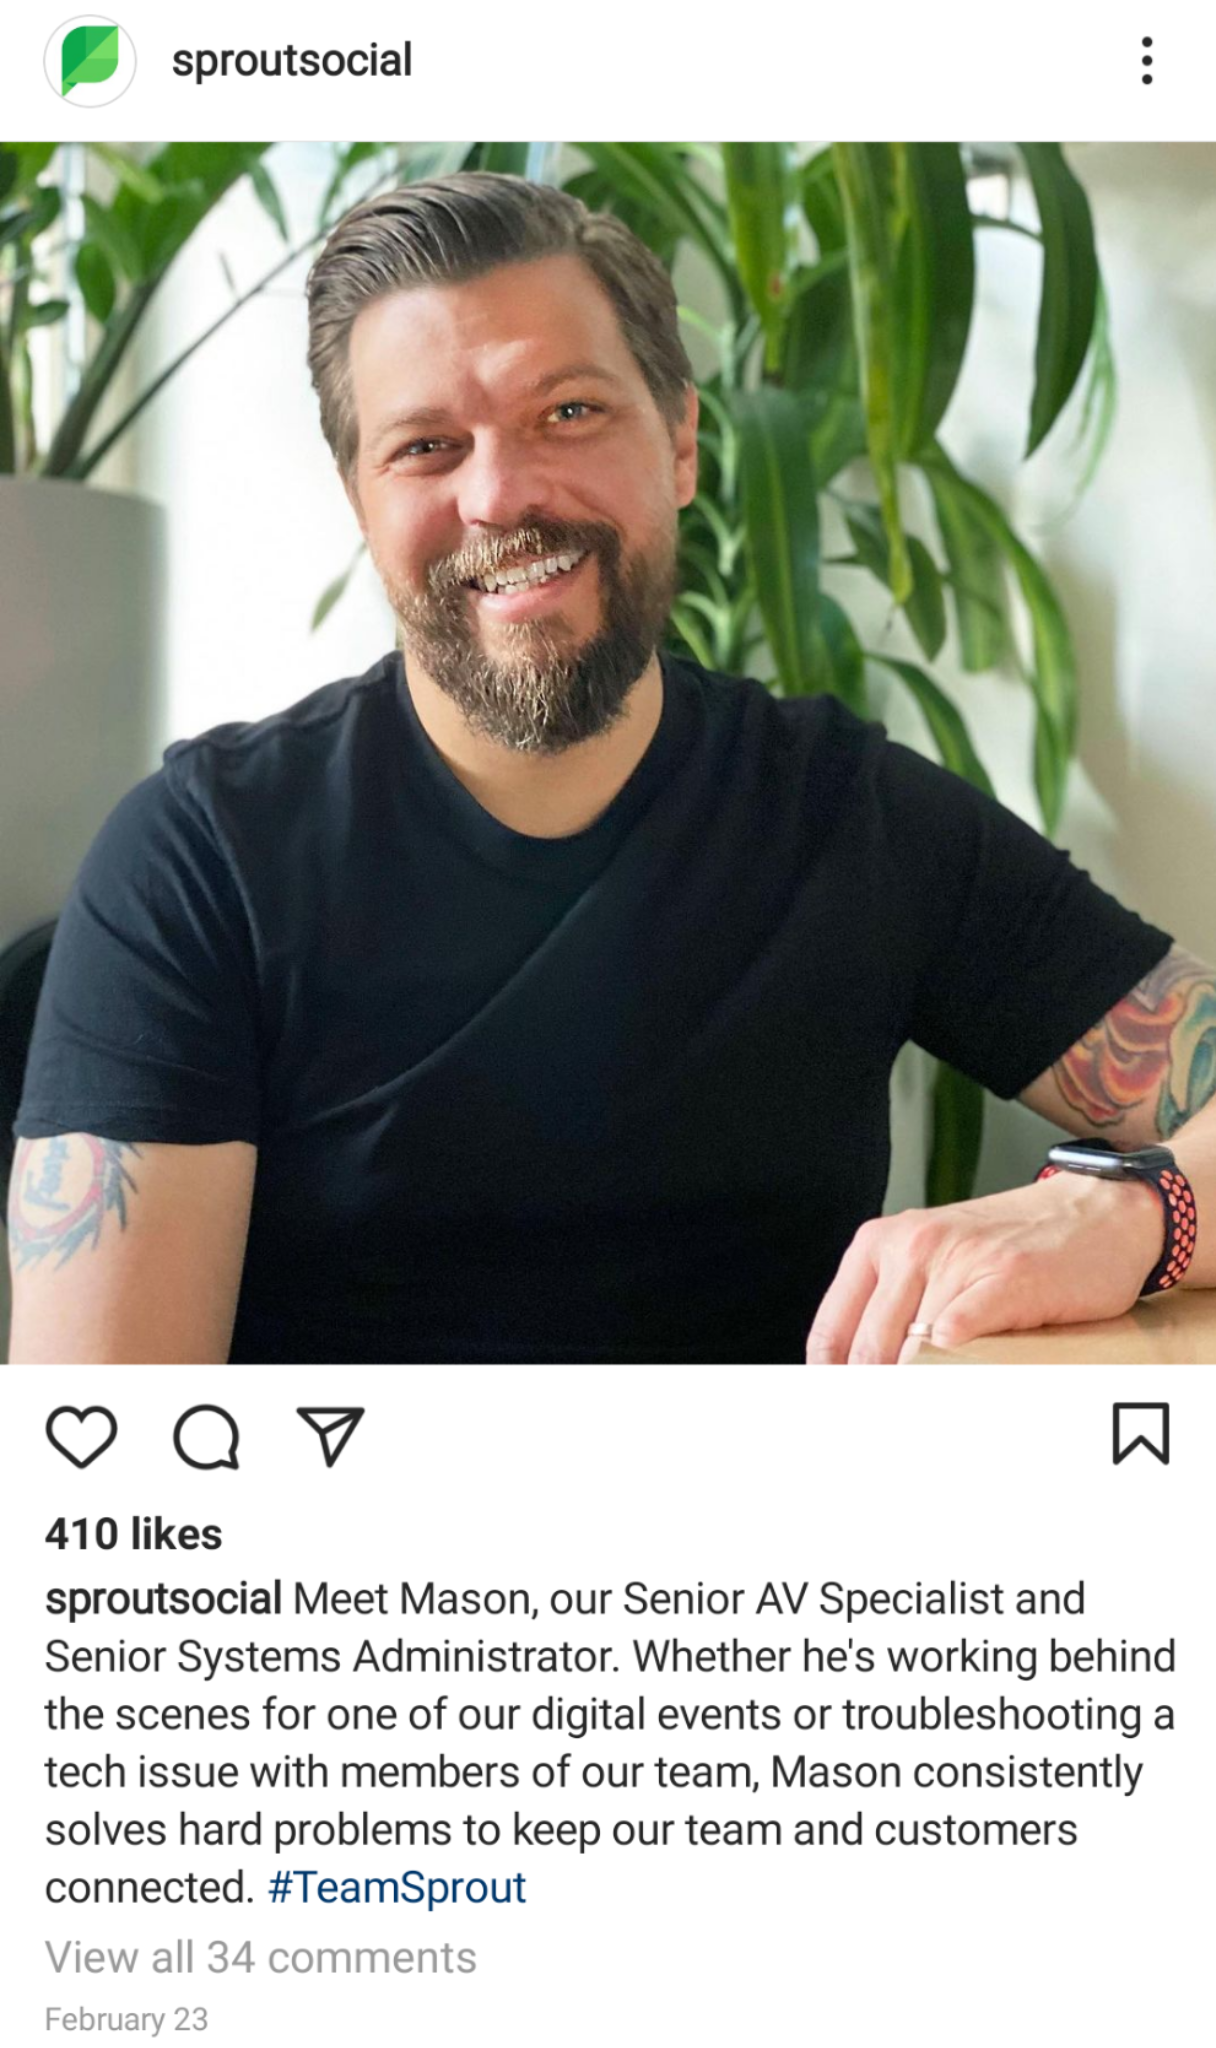 Sprout Social employee shout-out on Instagram